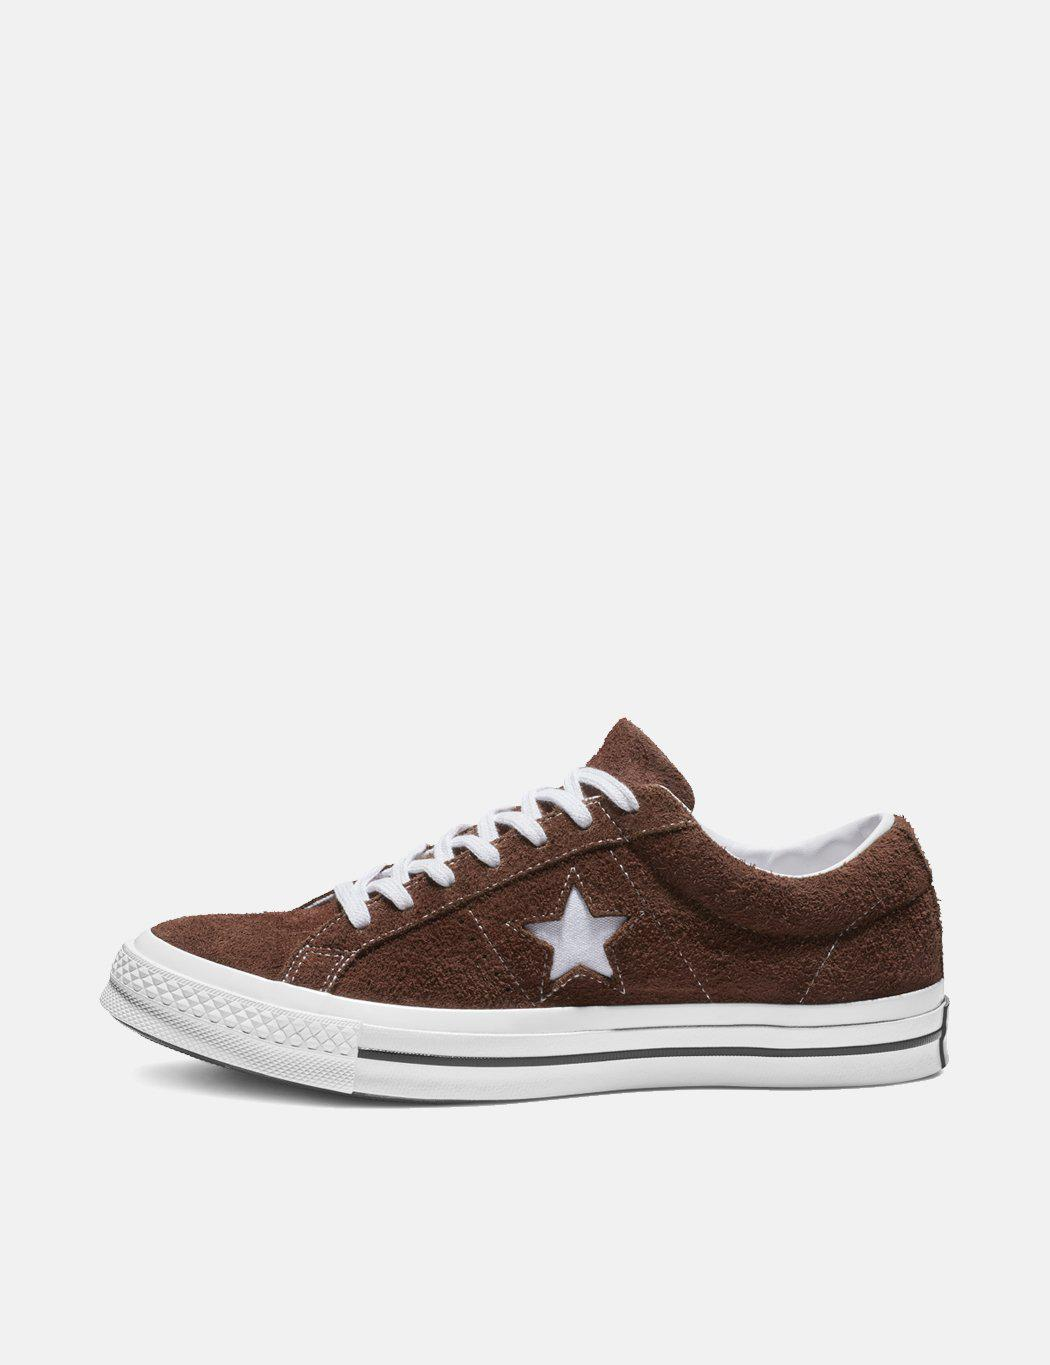 a0d0b2a3a9f Converse One Star Ox Vintage Suede in Brown for Men - Save 62% - Lyst